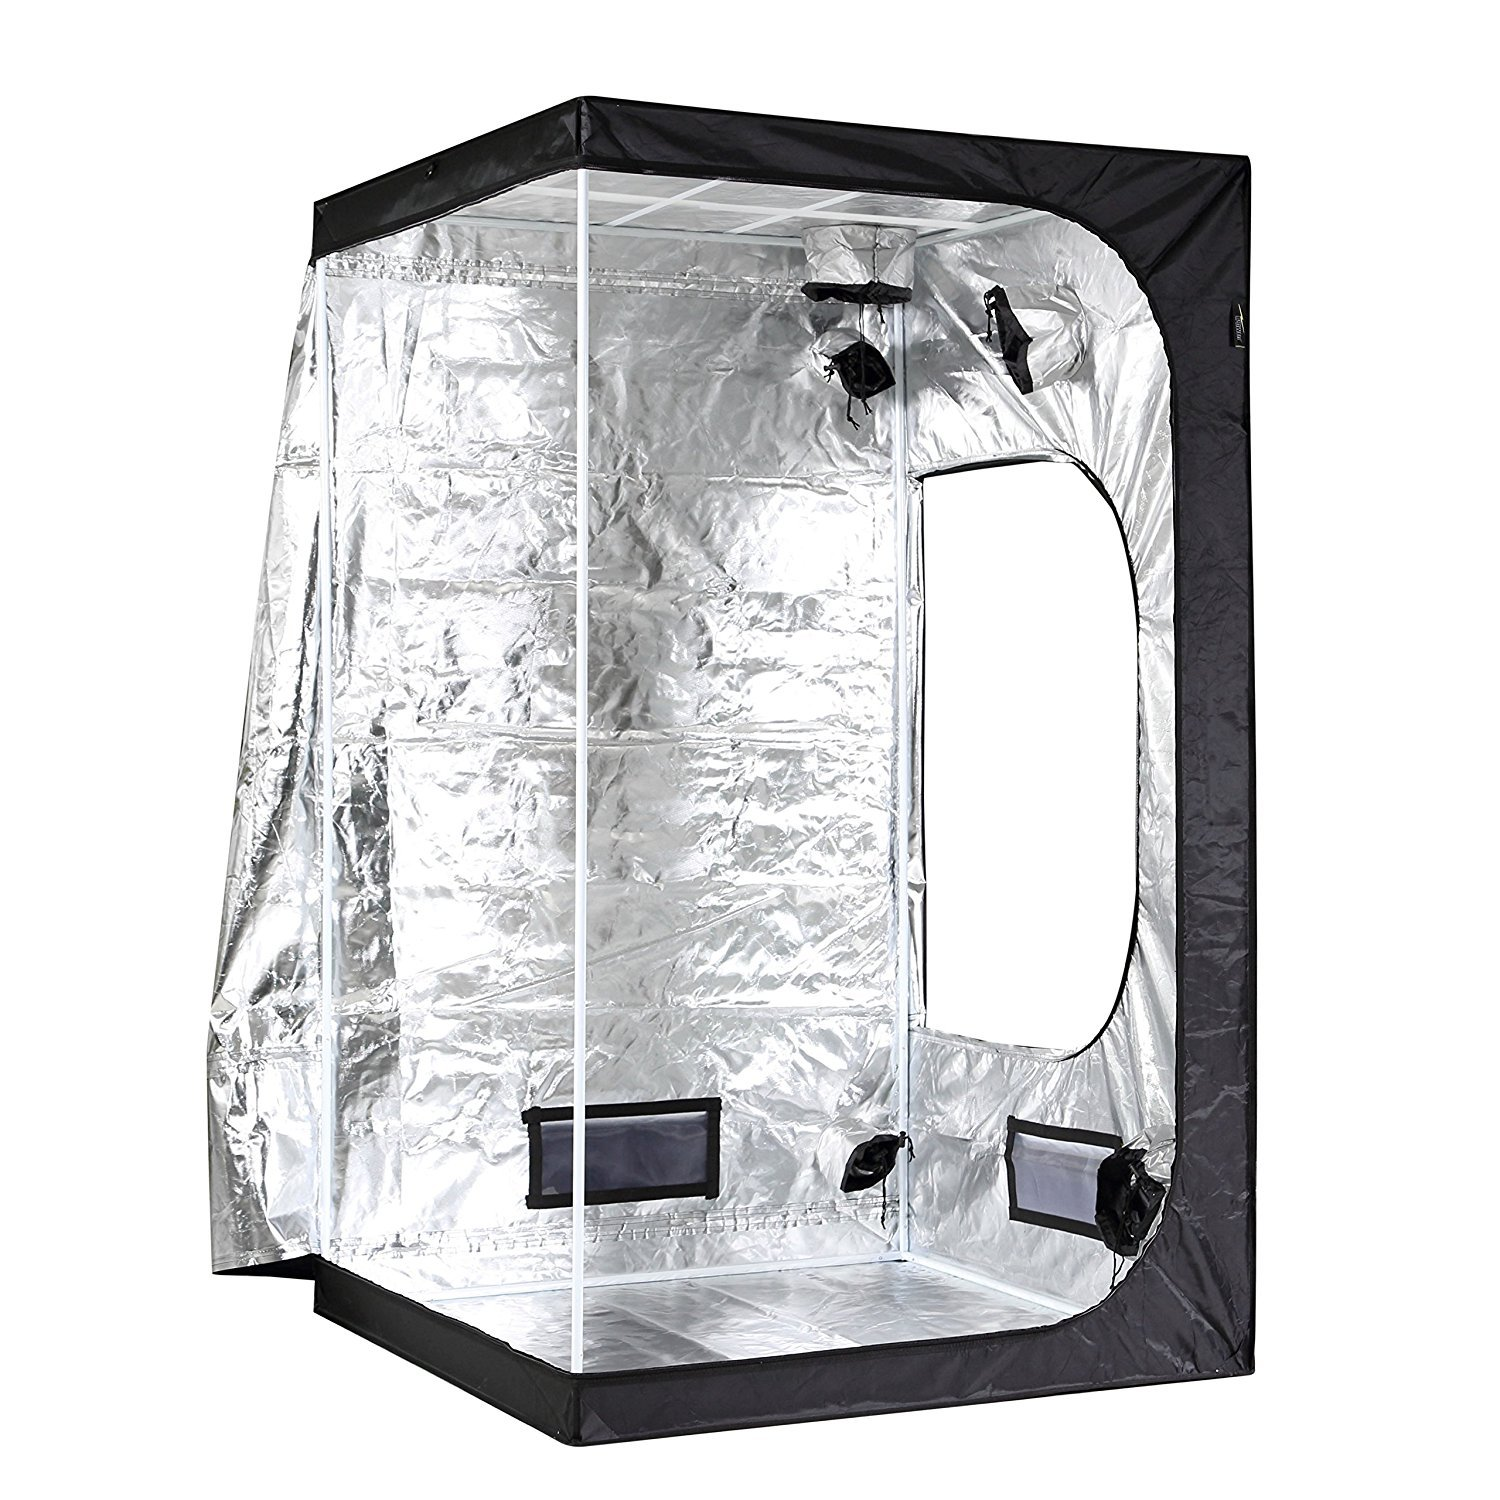 iPower 48''x48''x78'' 4'x4' Hydroponic Mylar Grow Tent with Observation Window, Tool Bag and Floor Tray for Grow Light and Indoor Plant Growing